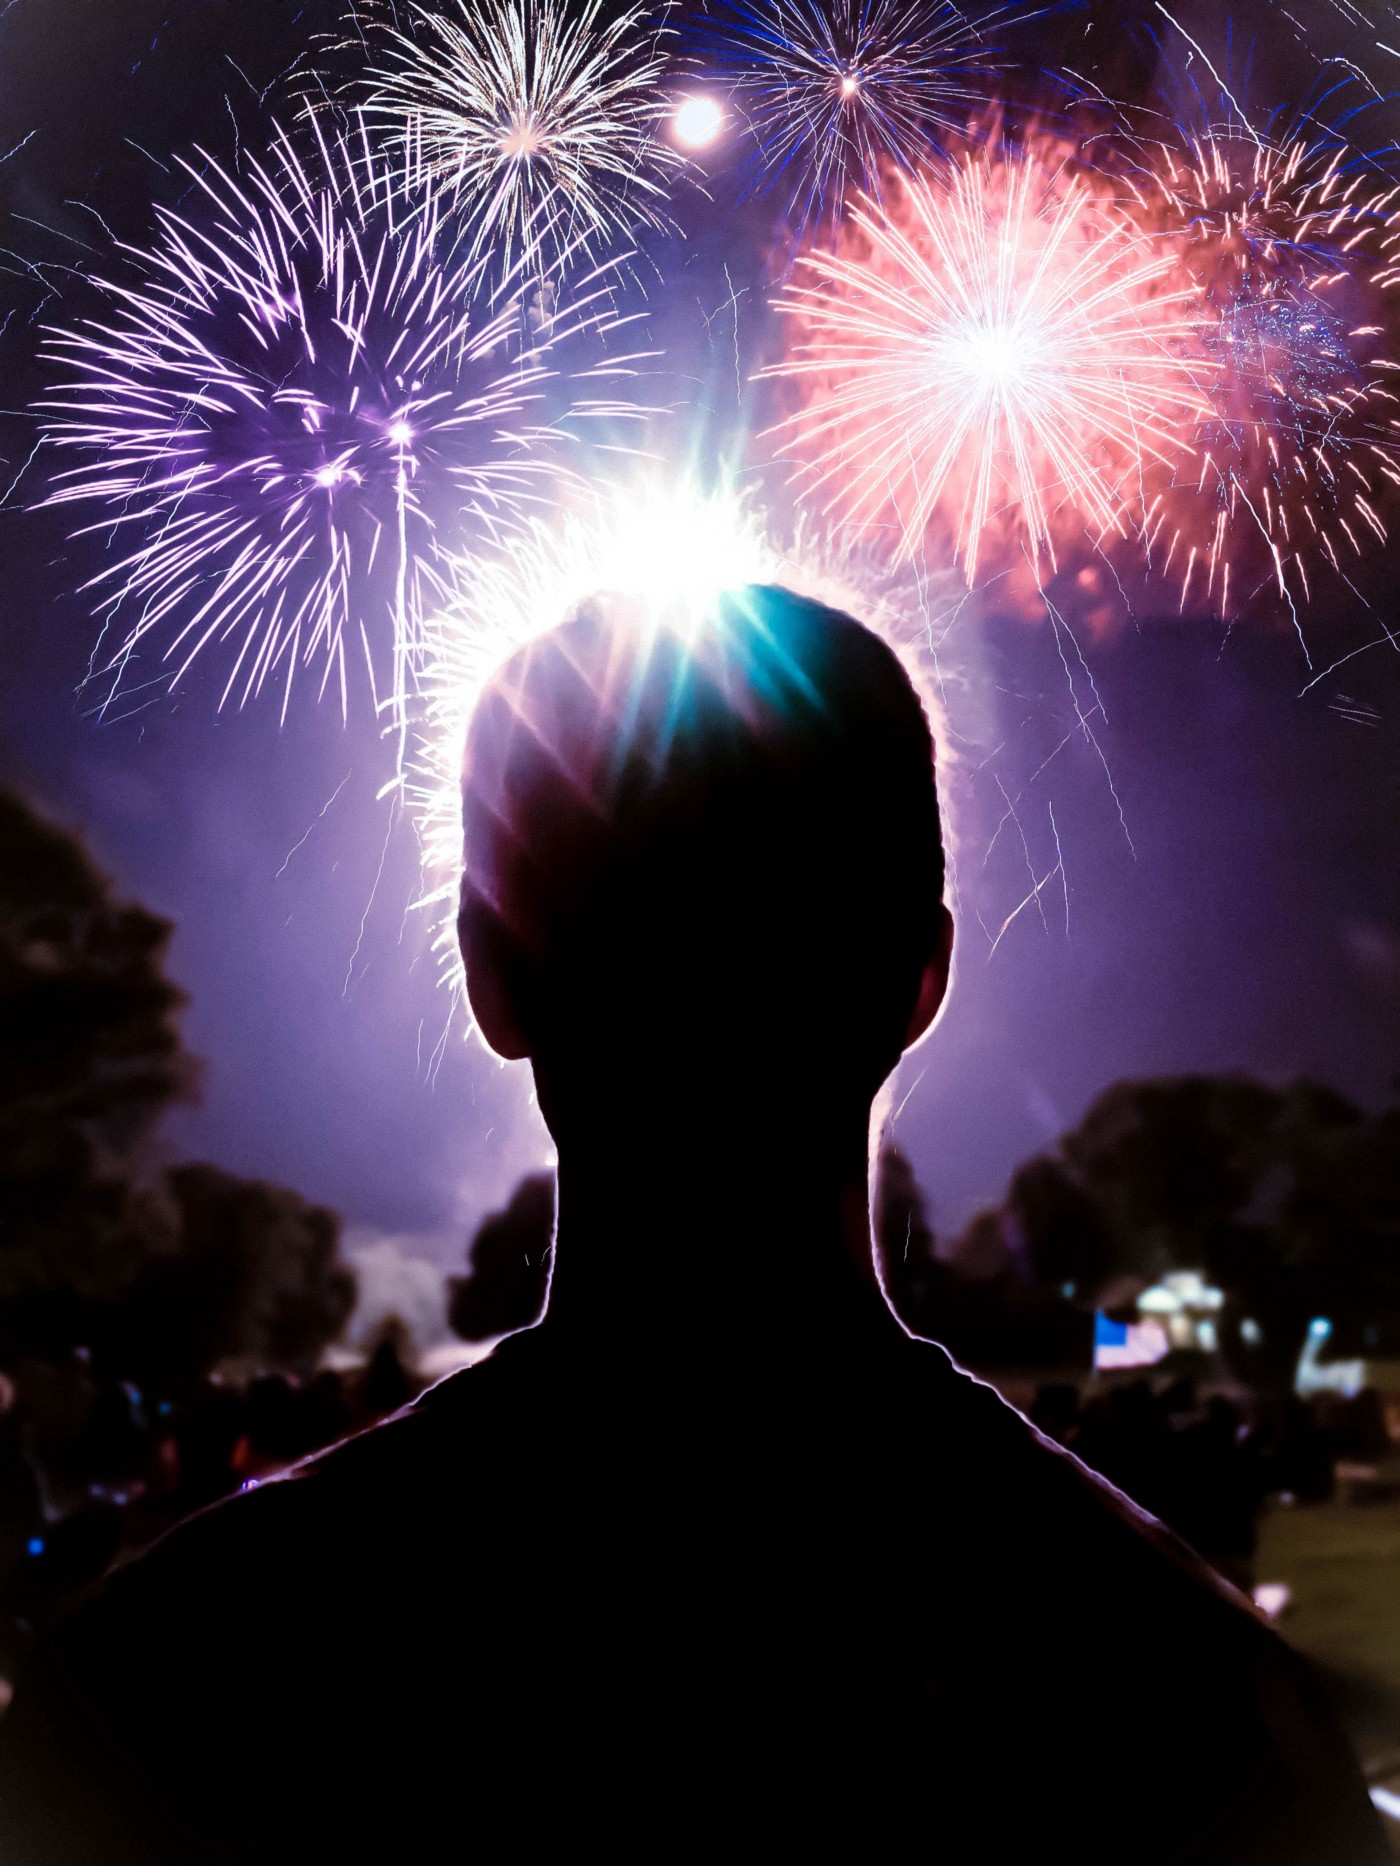 Outline of a man in the dark with the sky above him lit up by many large fireworks. Sky is a dark purple color.